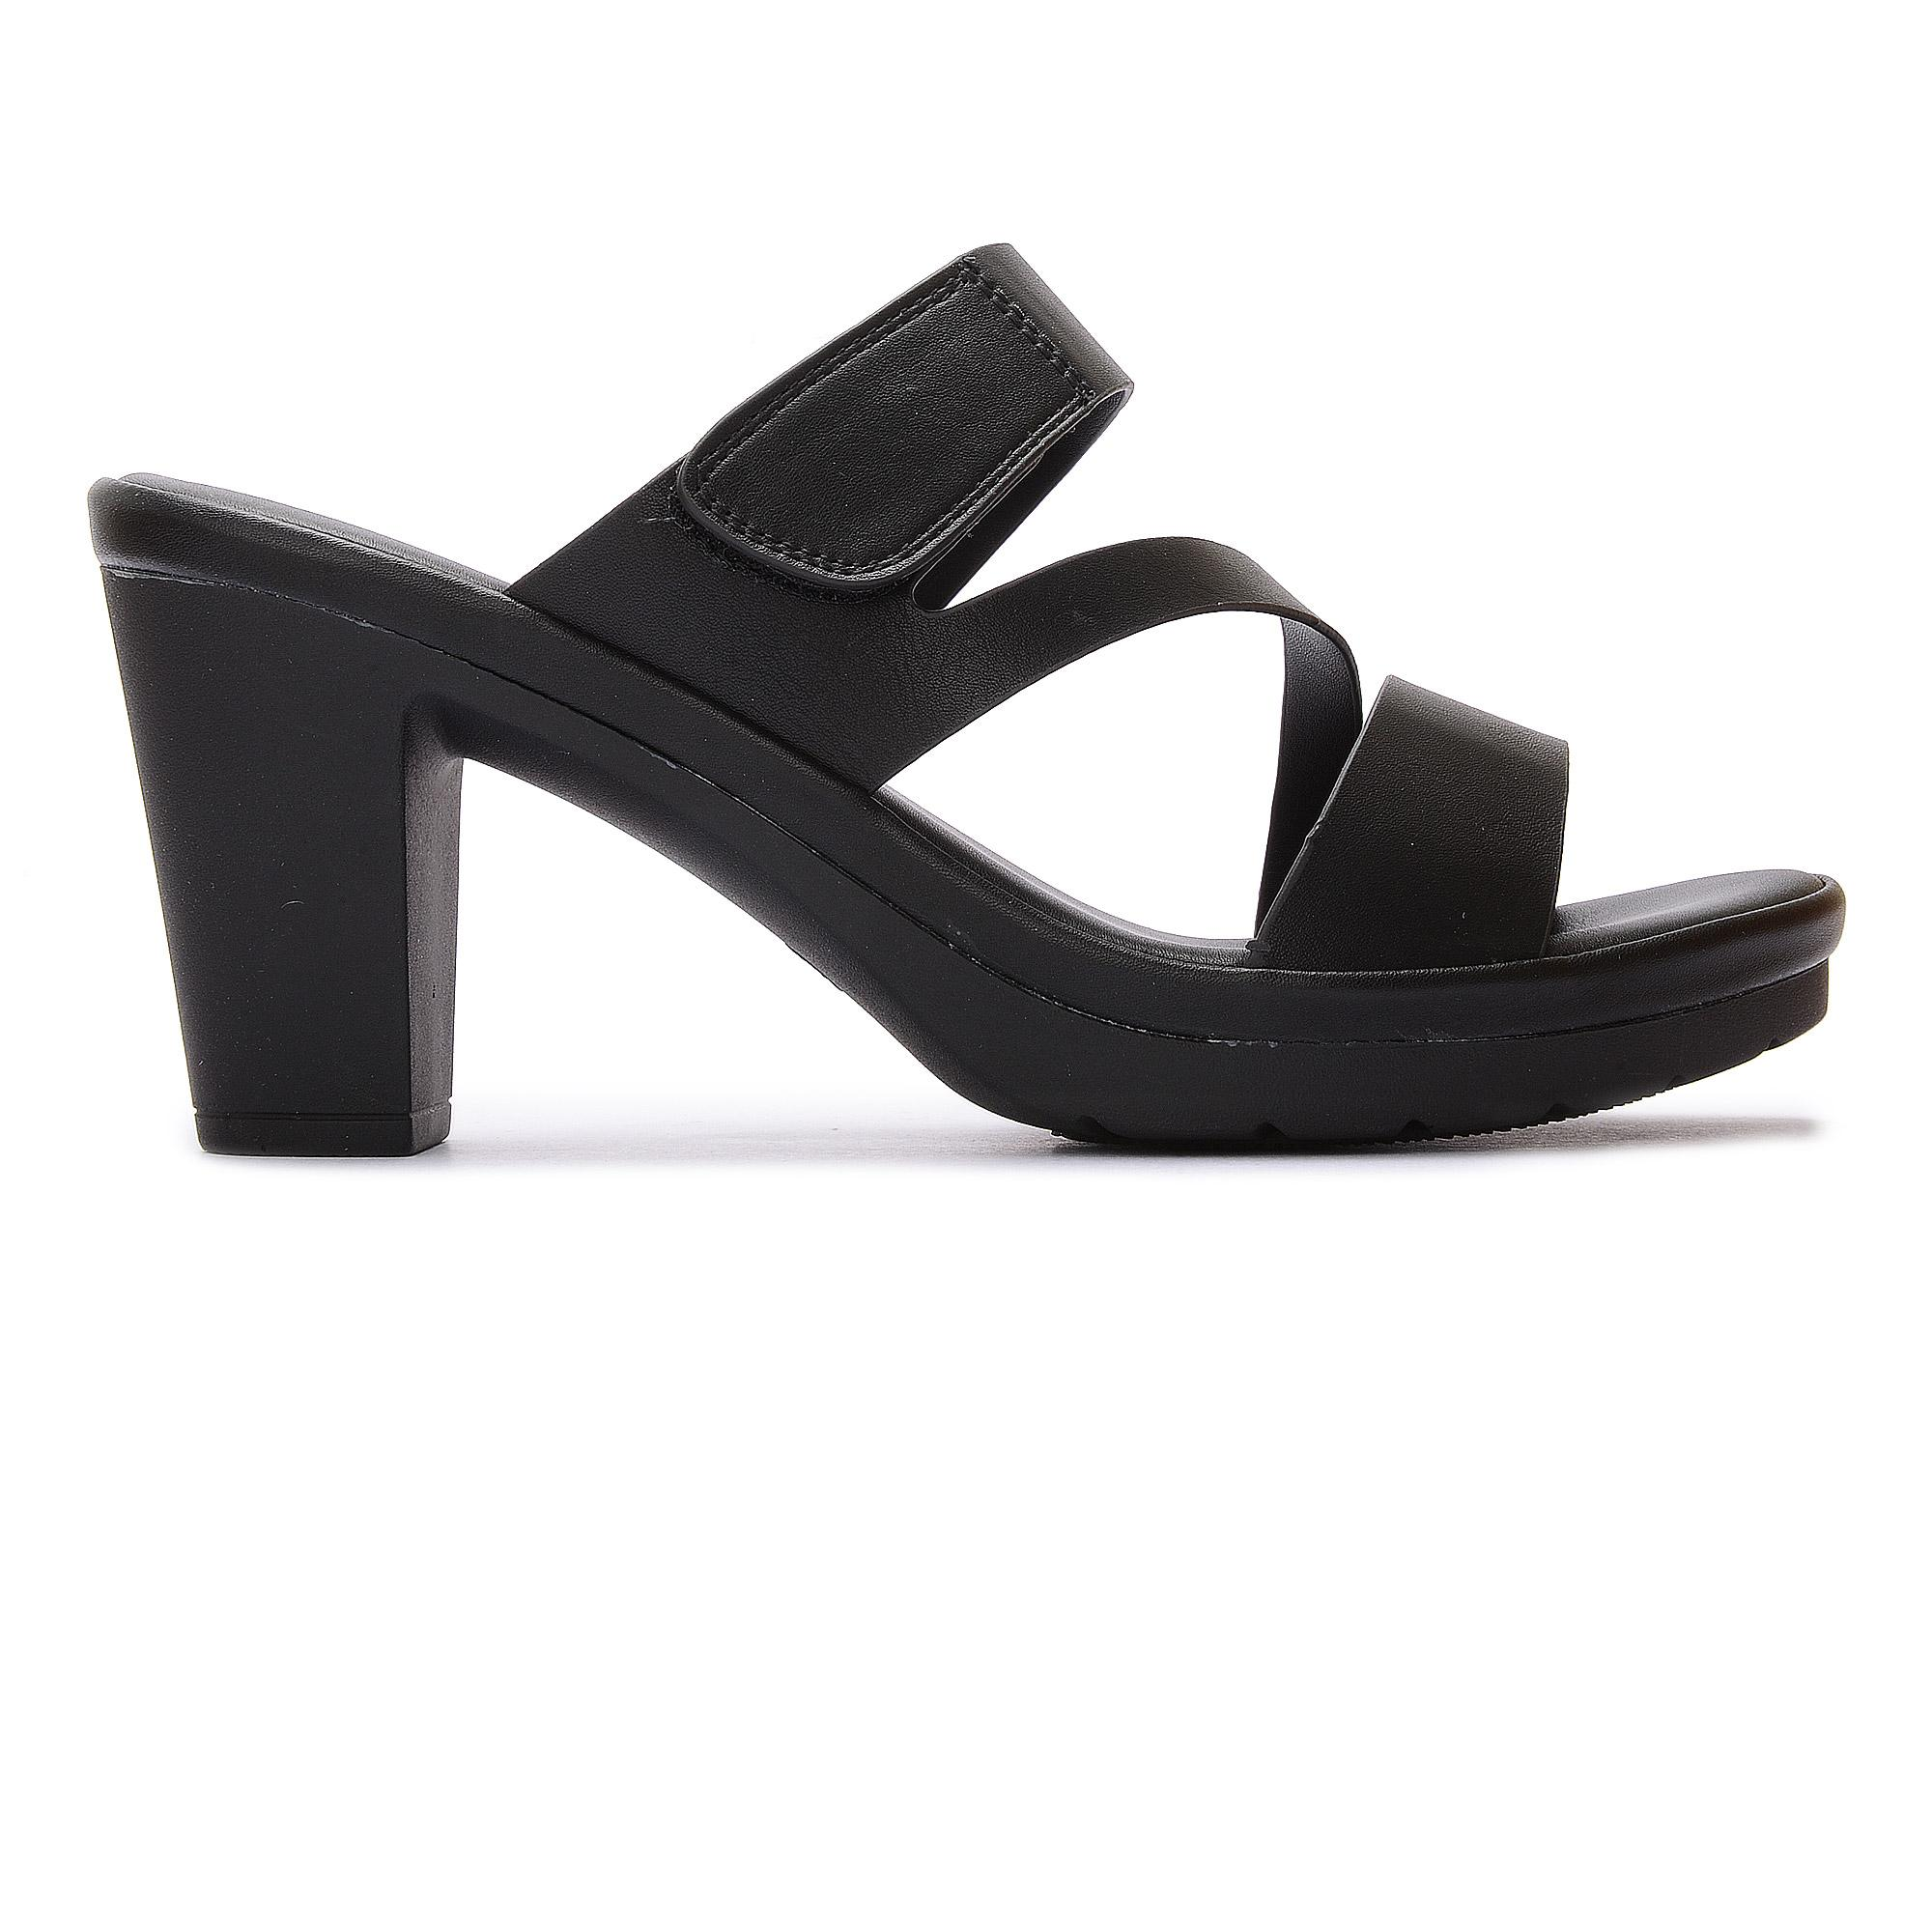 acfa3e9ee7e9 High Heels   Wedges in Singapore for Women